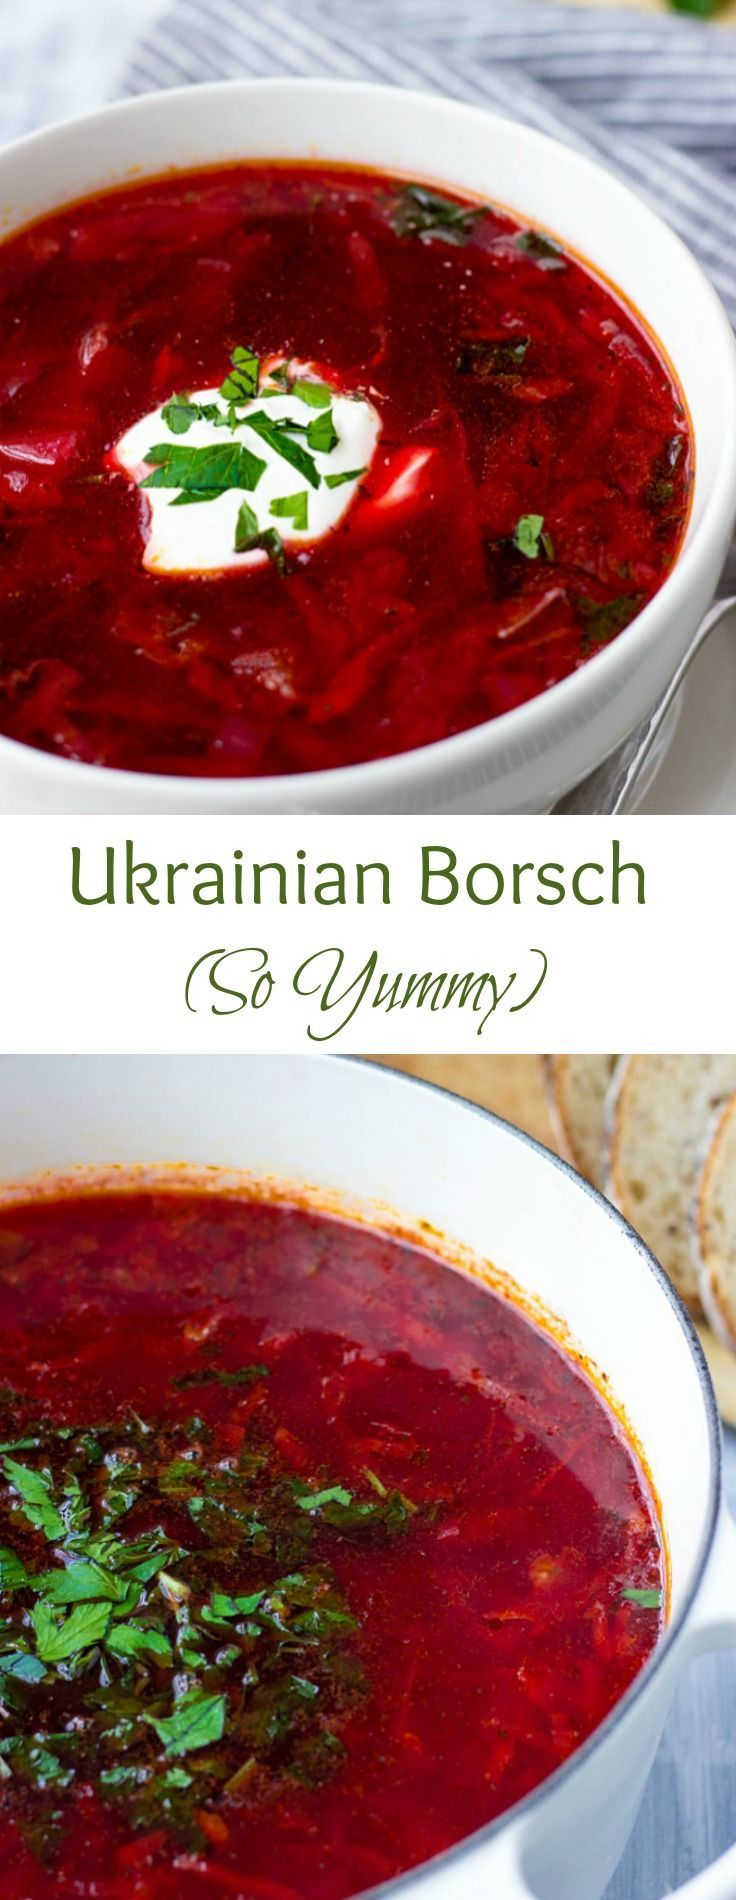 This is the BEST Borscht recipe. Loaded with vegetables and flavor, this classic Easy Ukrainian Borscht is a timeless comfort food.